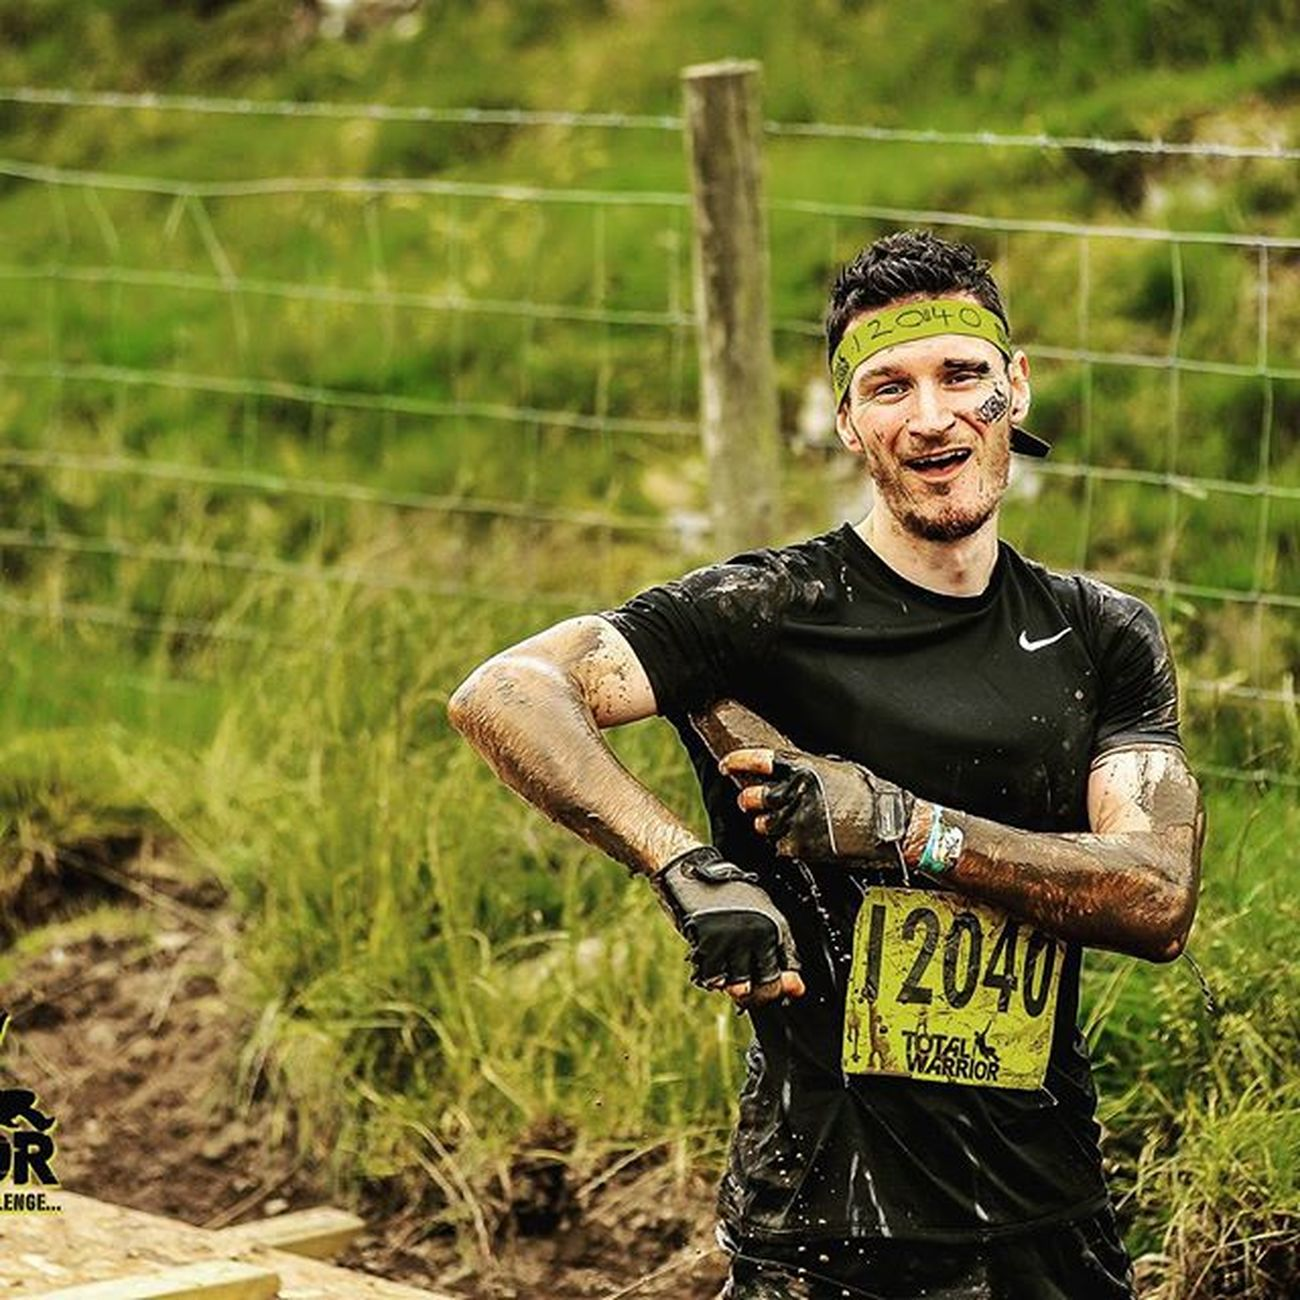 Total Warrior, great fun! Totalwarrior Washingwitharock Ocr Obstaclecourseracing Relentless